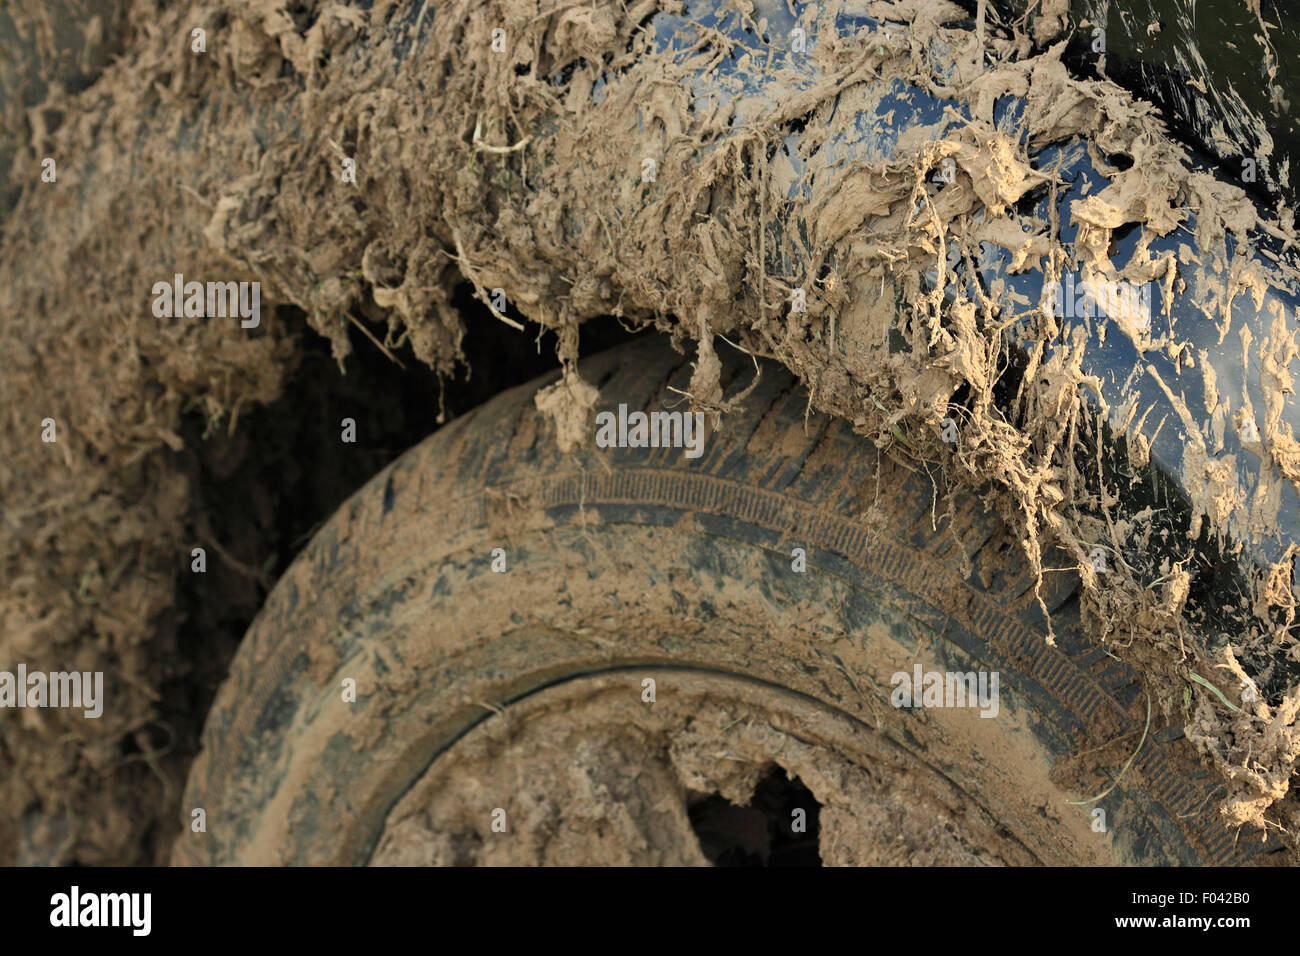 https://c8.alamy.com/comp/F042B0/close-up-photo-of-a-car-covered-with-mud-shallow-depth-of-field-F042B0.jpg